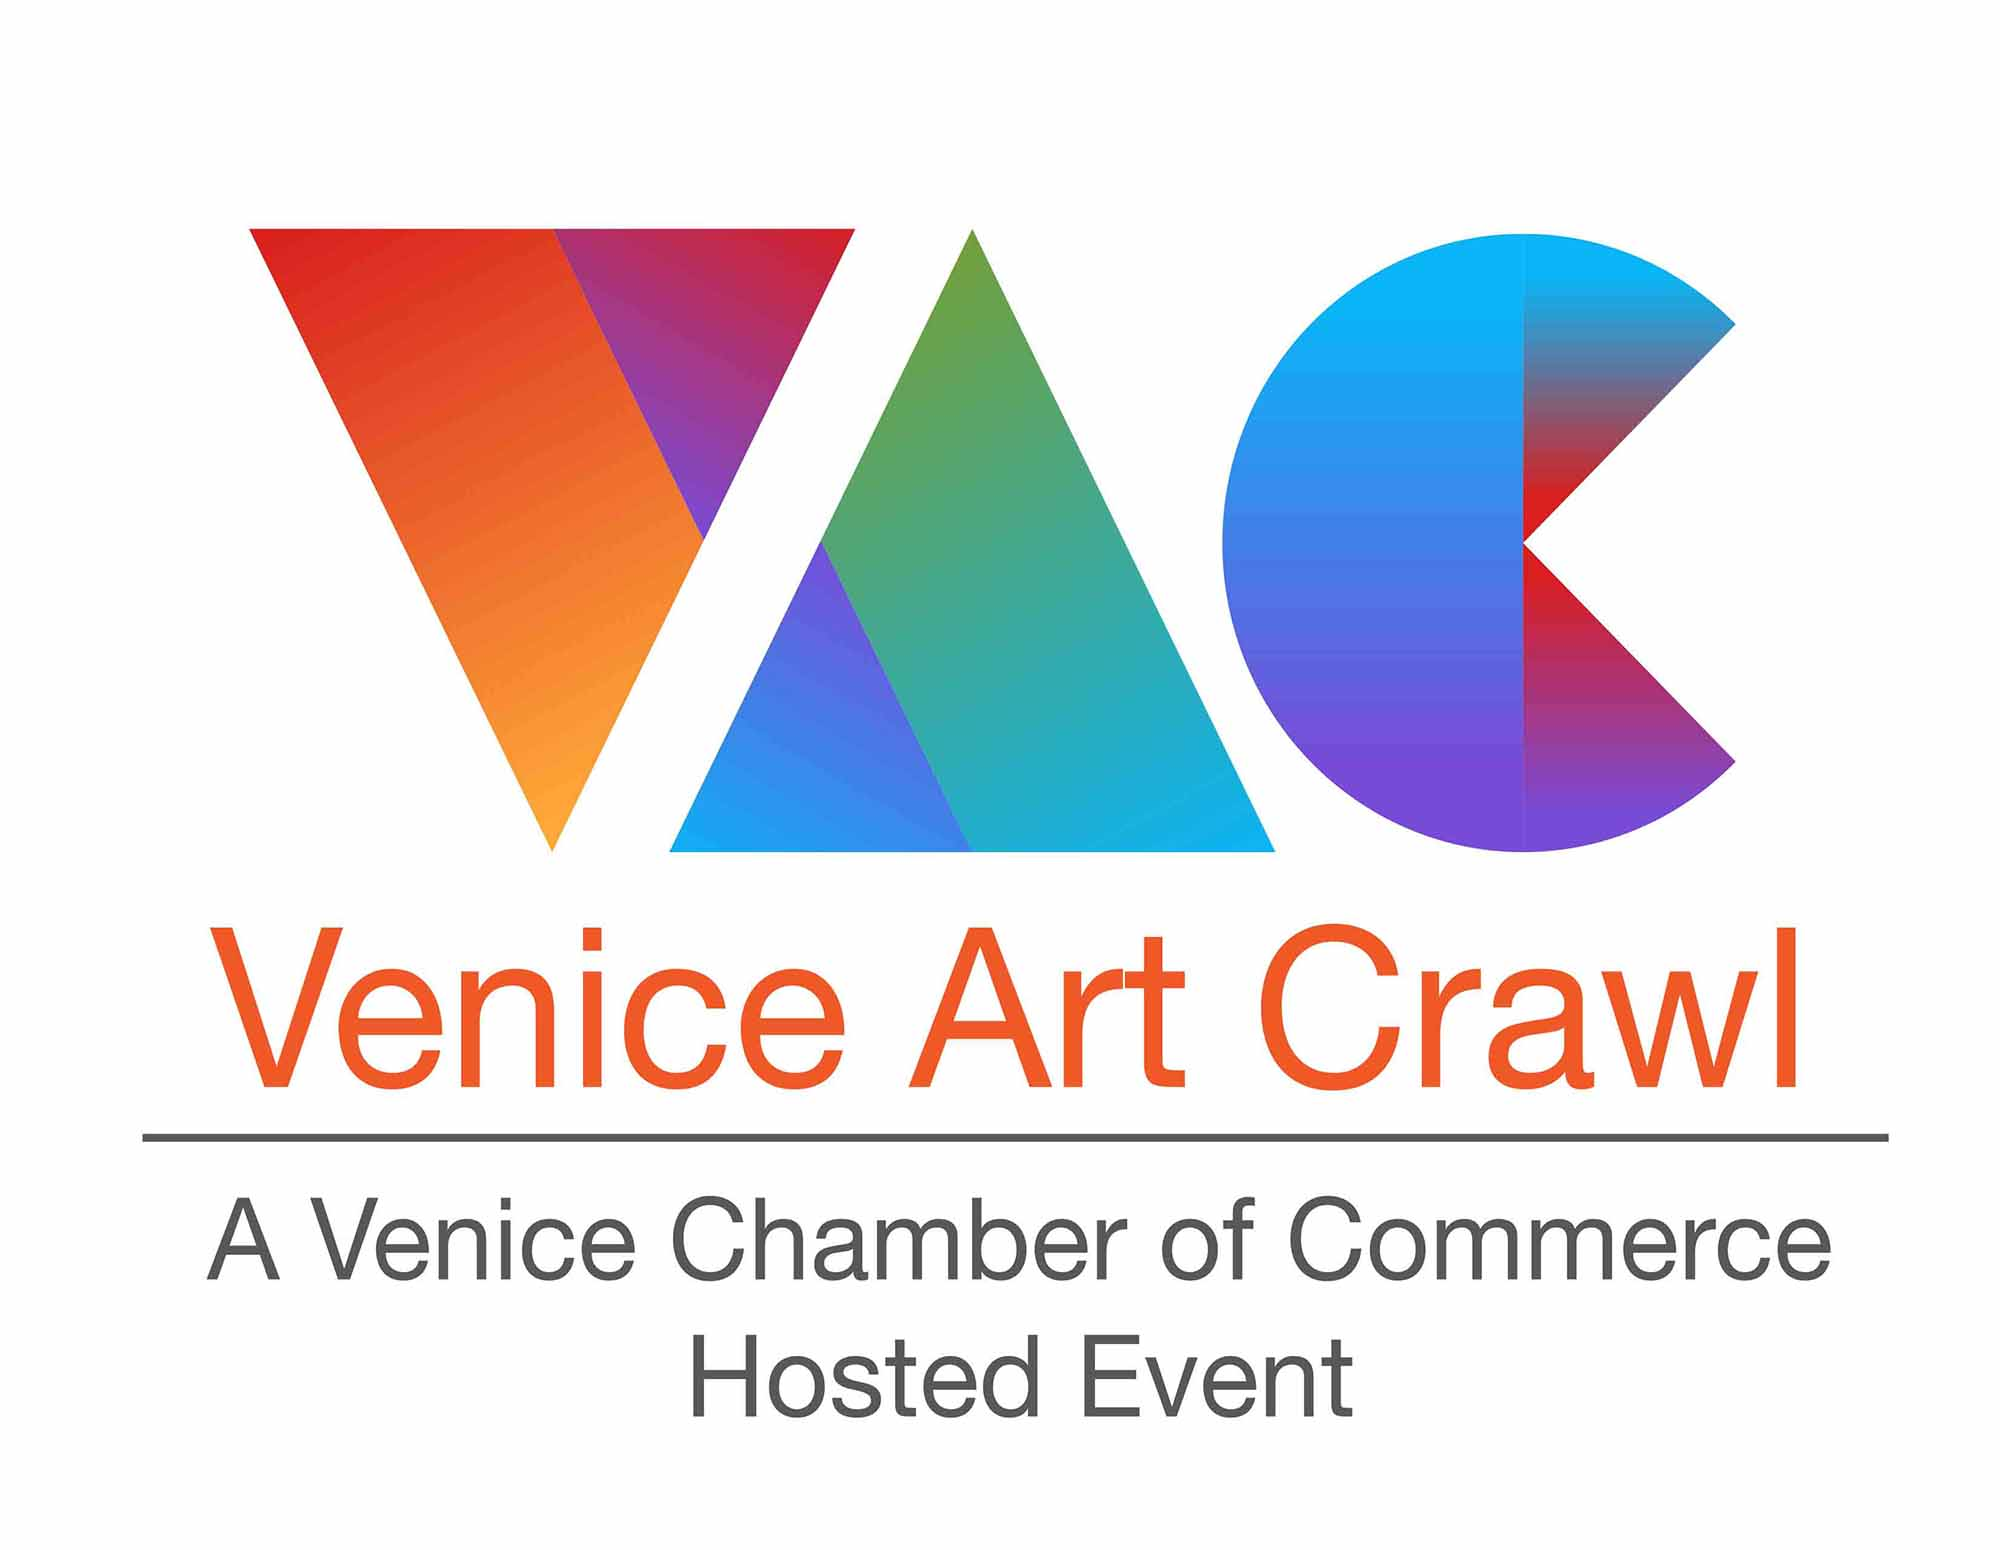 Venice Art Crawl: This Is Venice!